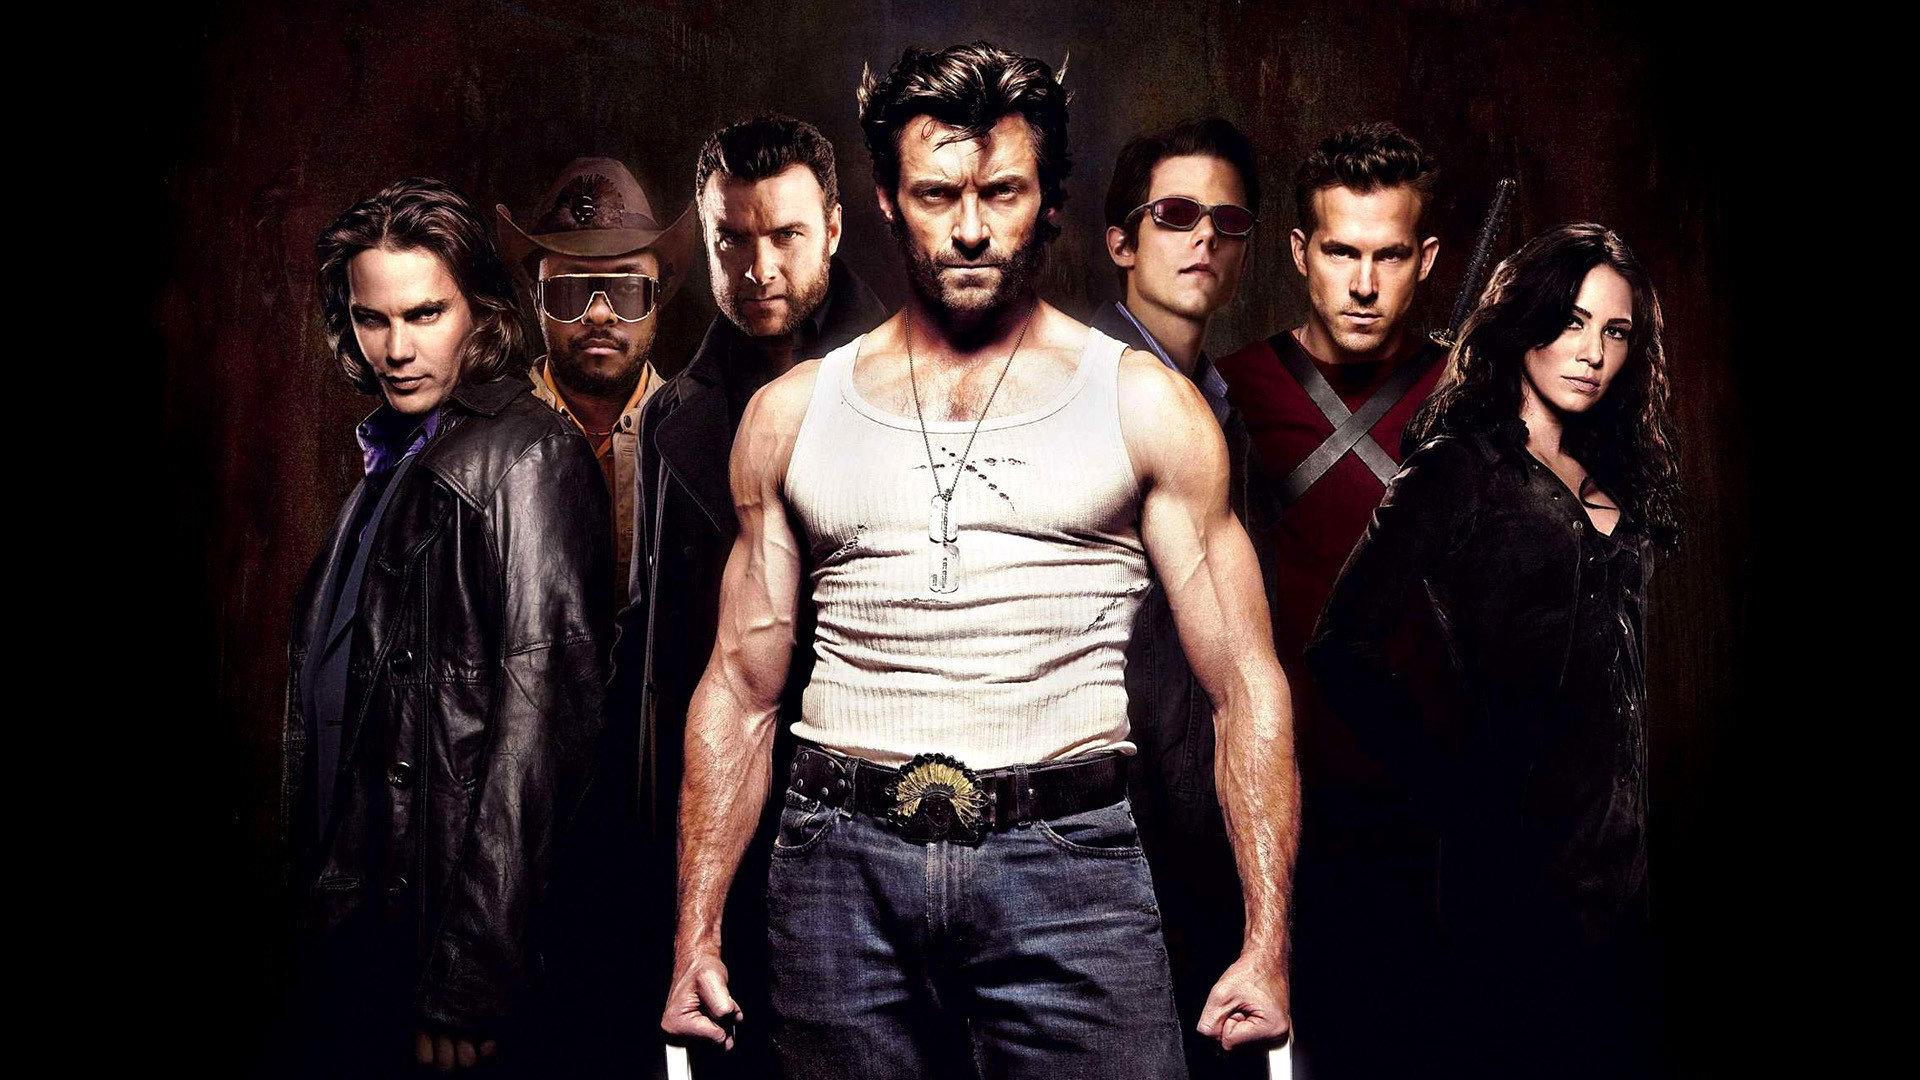 Download Hd 1080p X Men Origins Wolverine PC Background ID165789 For Free